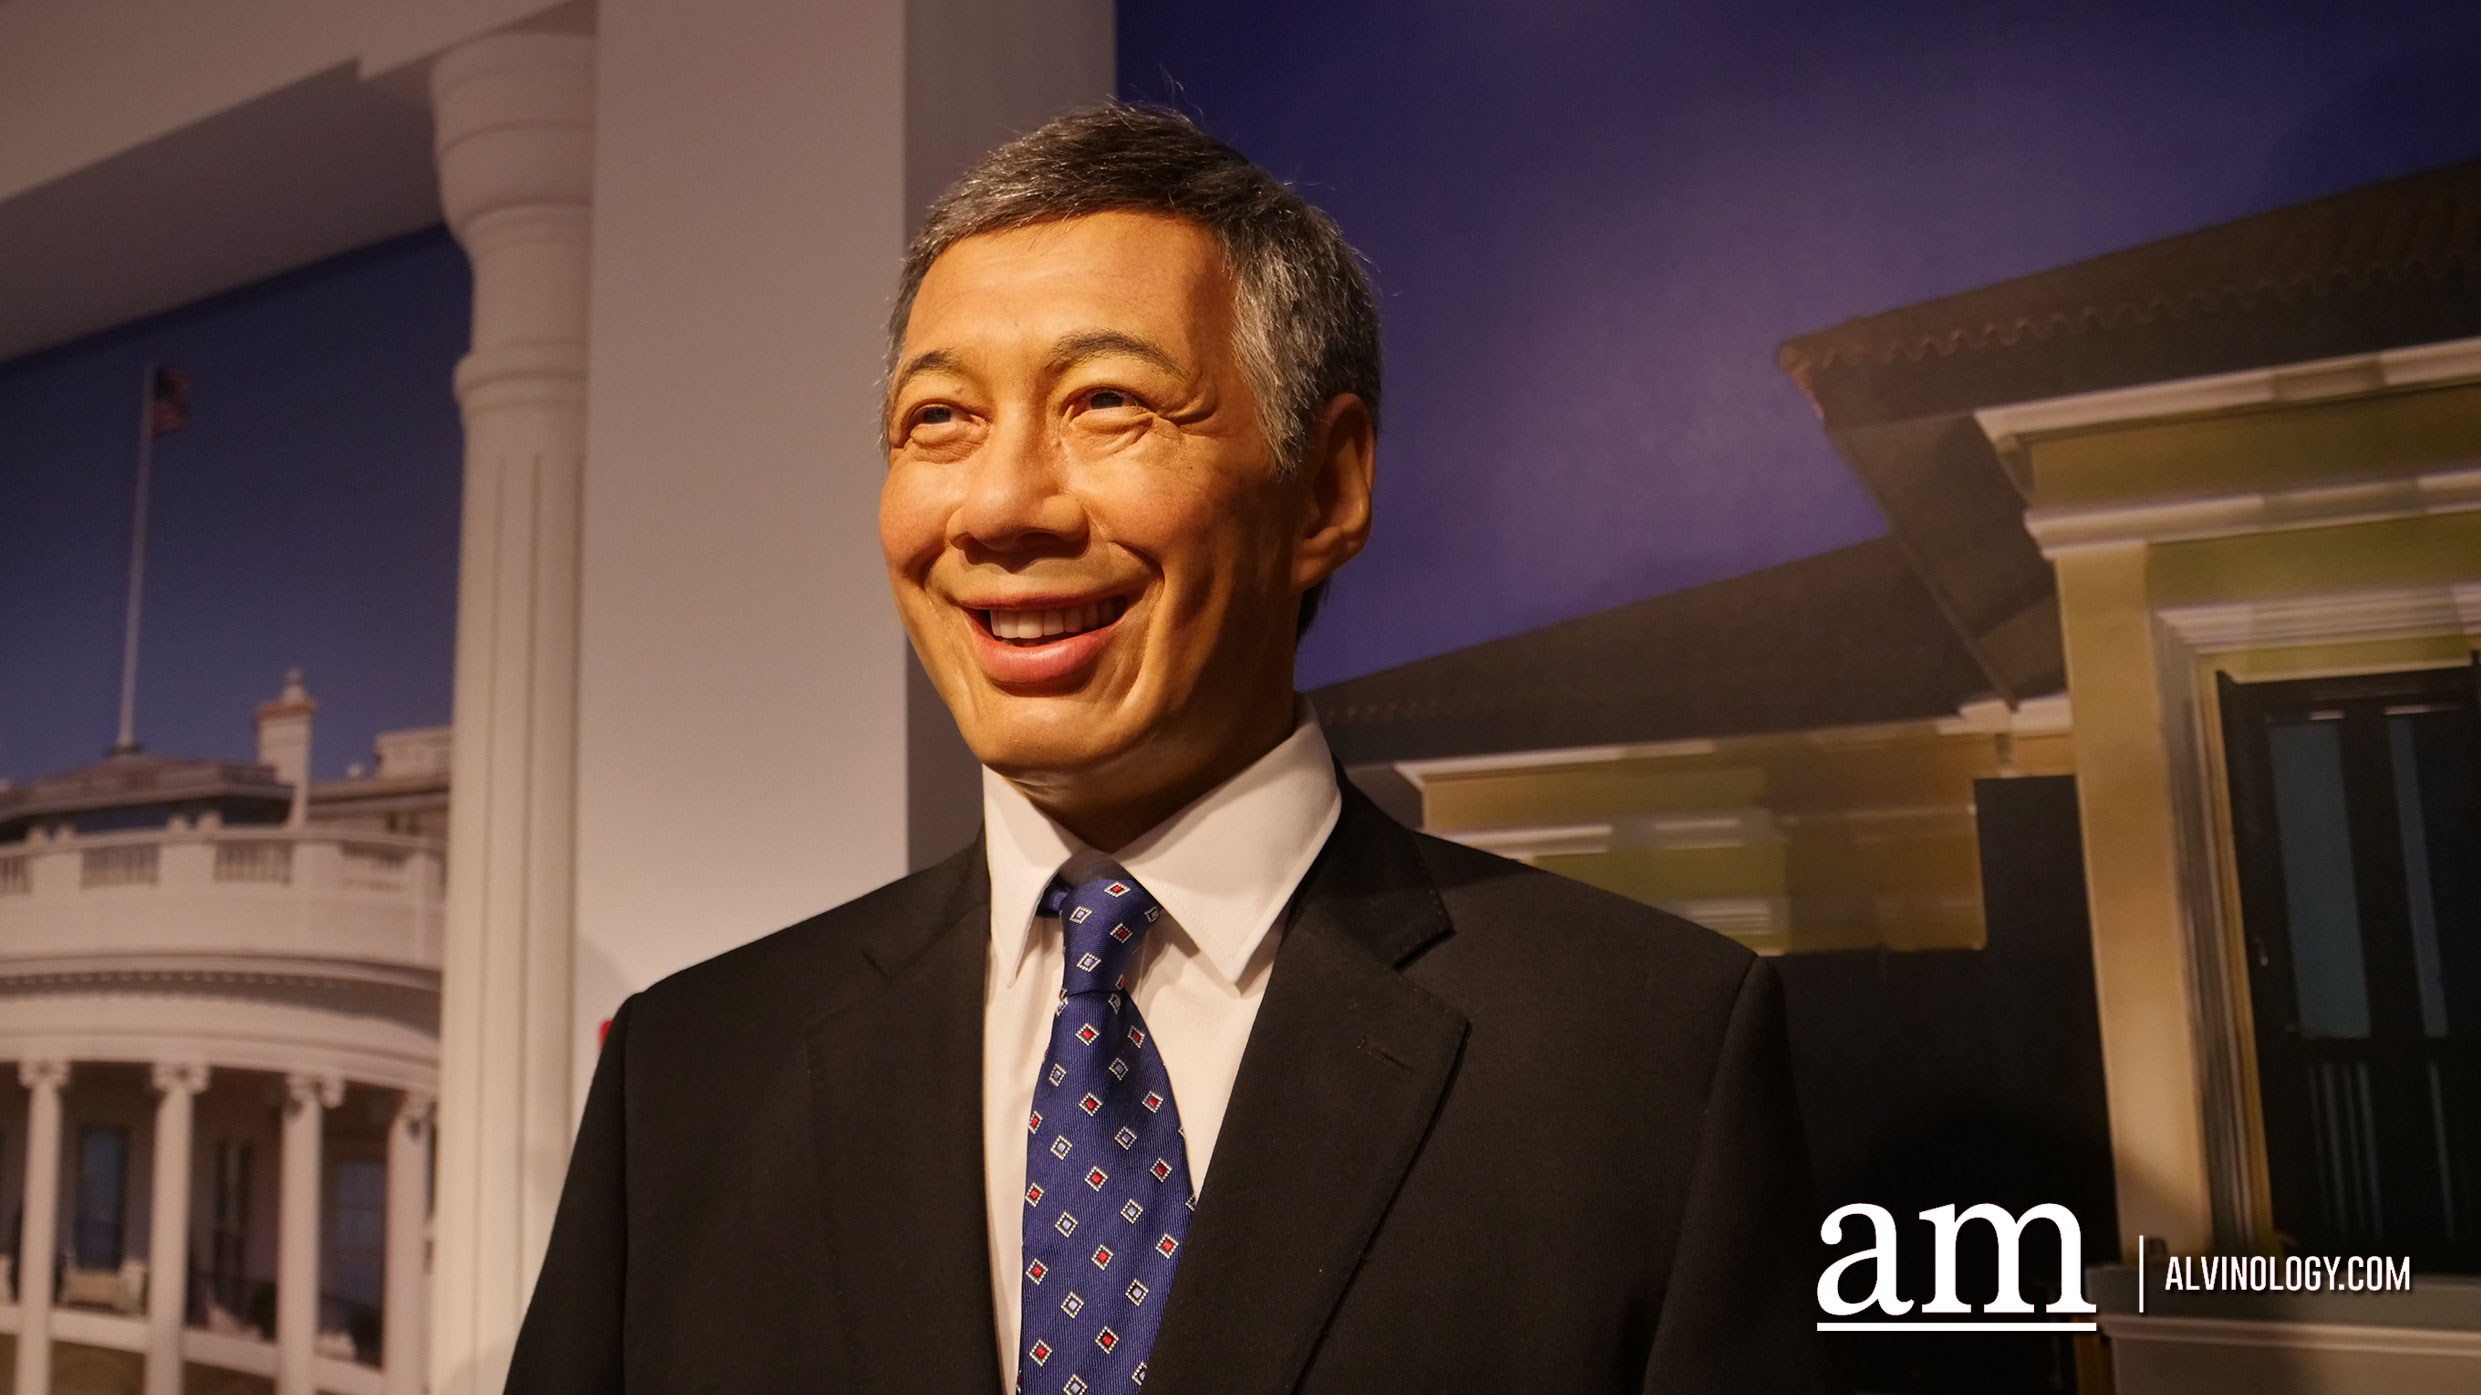 Singapore's third and current prime minister, Lee Hsien Loong